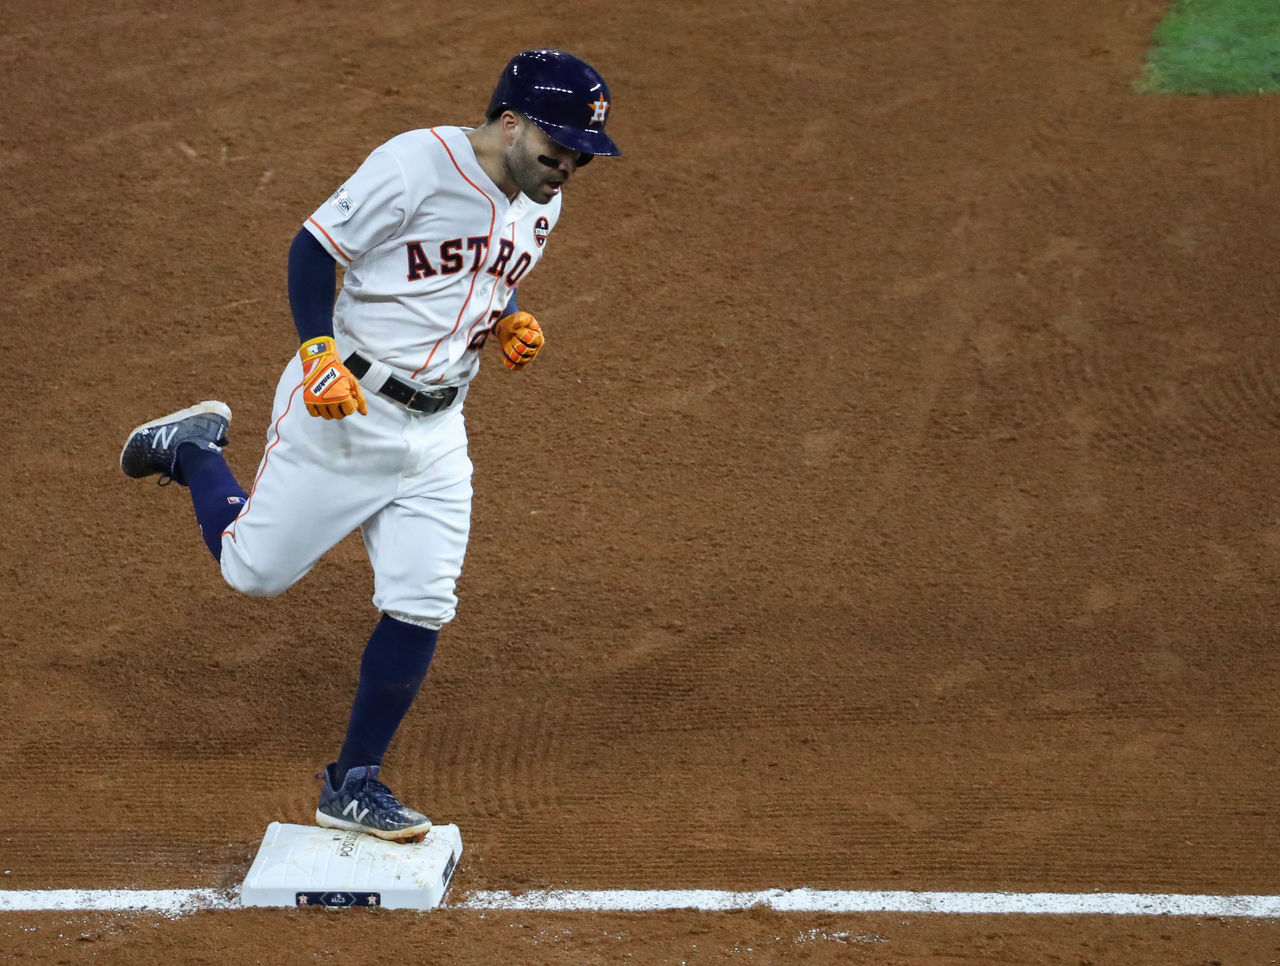 Cropped 2017 10 21t031410z 268883506 nocid rtrmadp 3 mlb alcs new york yankees at houston astros